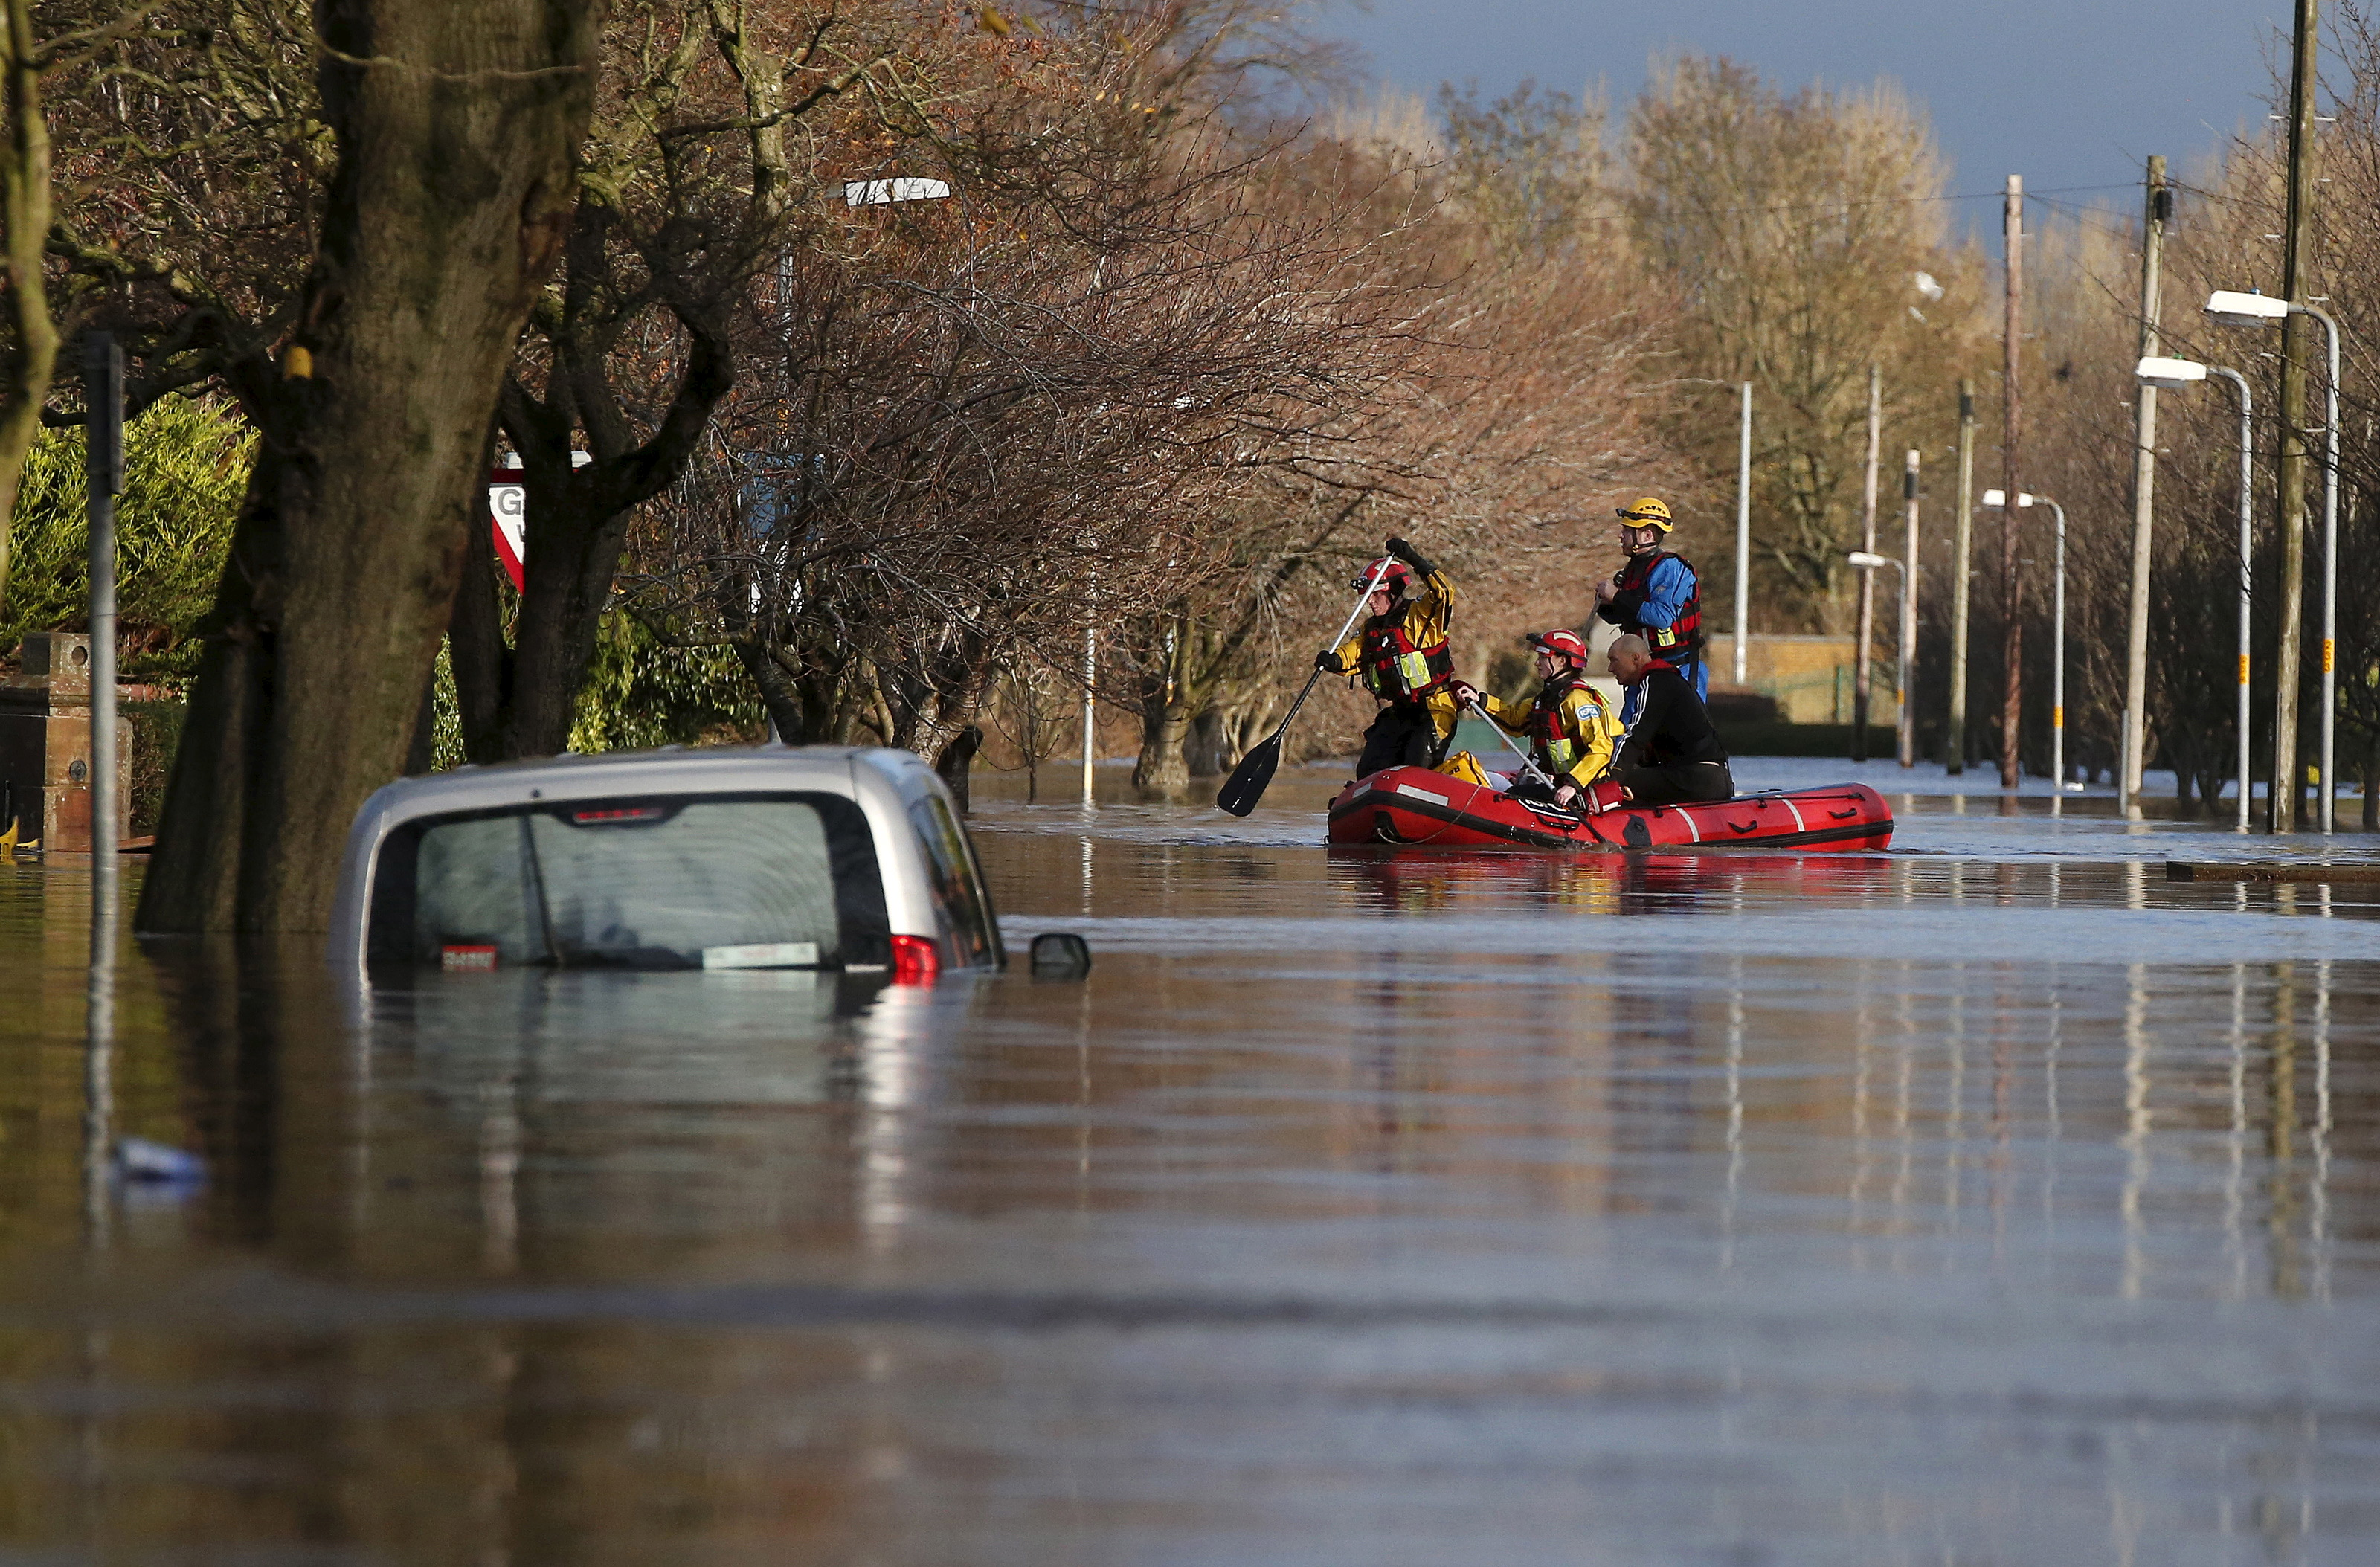 Rescue workers remove local residents by boat from a flooded residential street in Carlisle, Britain December 6, 2015. British police have declared a major incident in northern England after prolonged heavy rain caused widespread flooding and forced emergency services to evacuate residents from their homes. REUTERS/Phil Noble